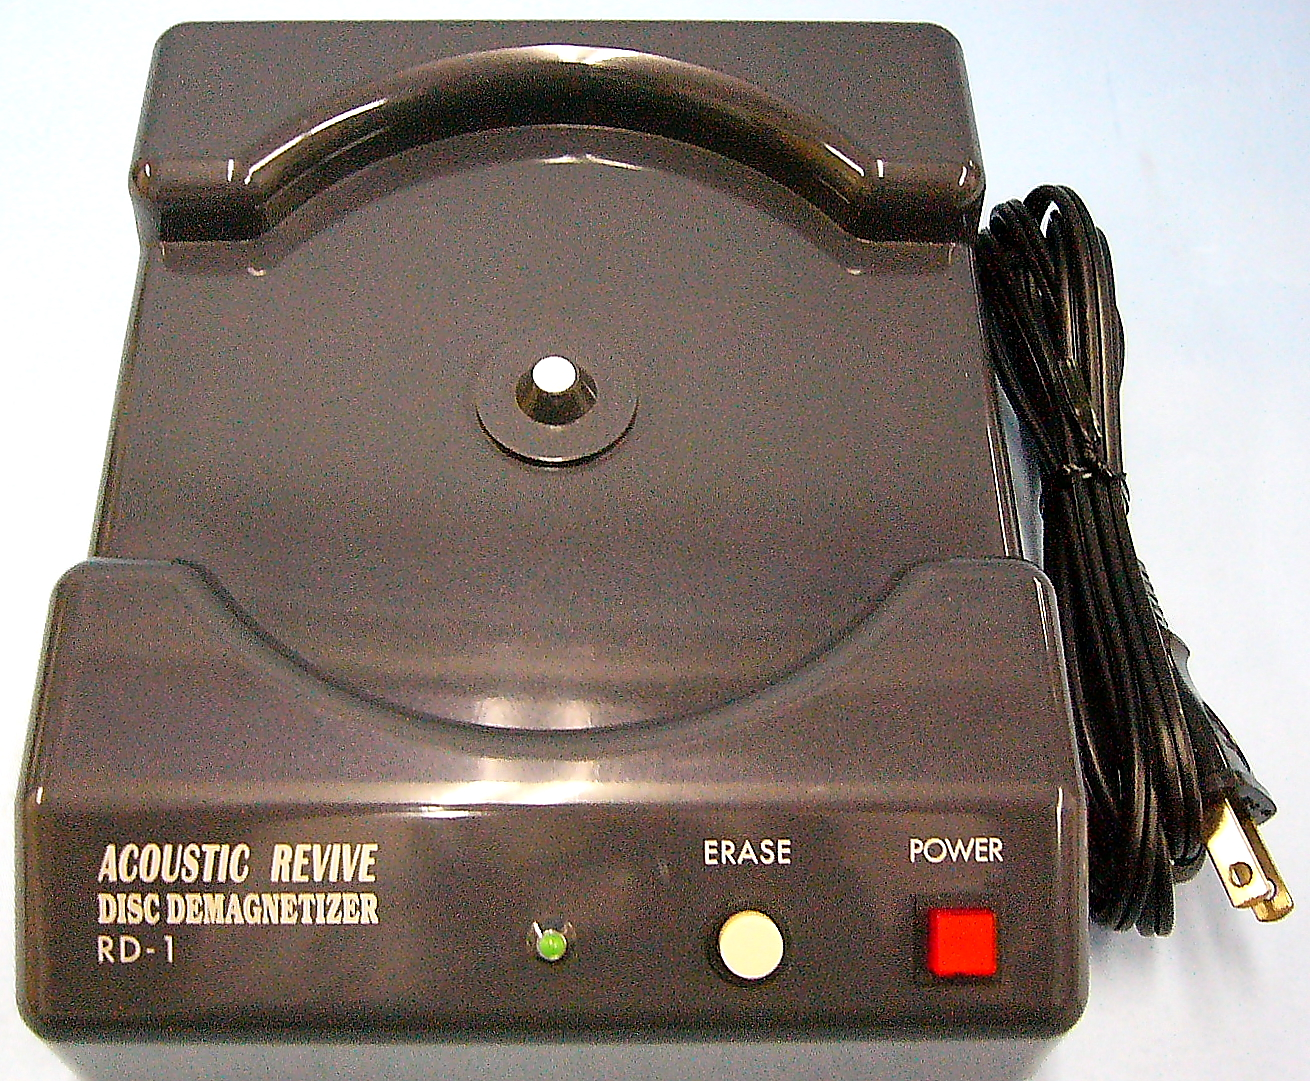 Acoustic Revive CD消磁器 RD-1